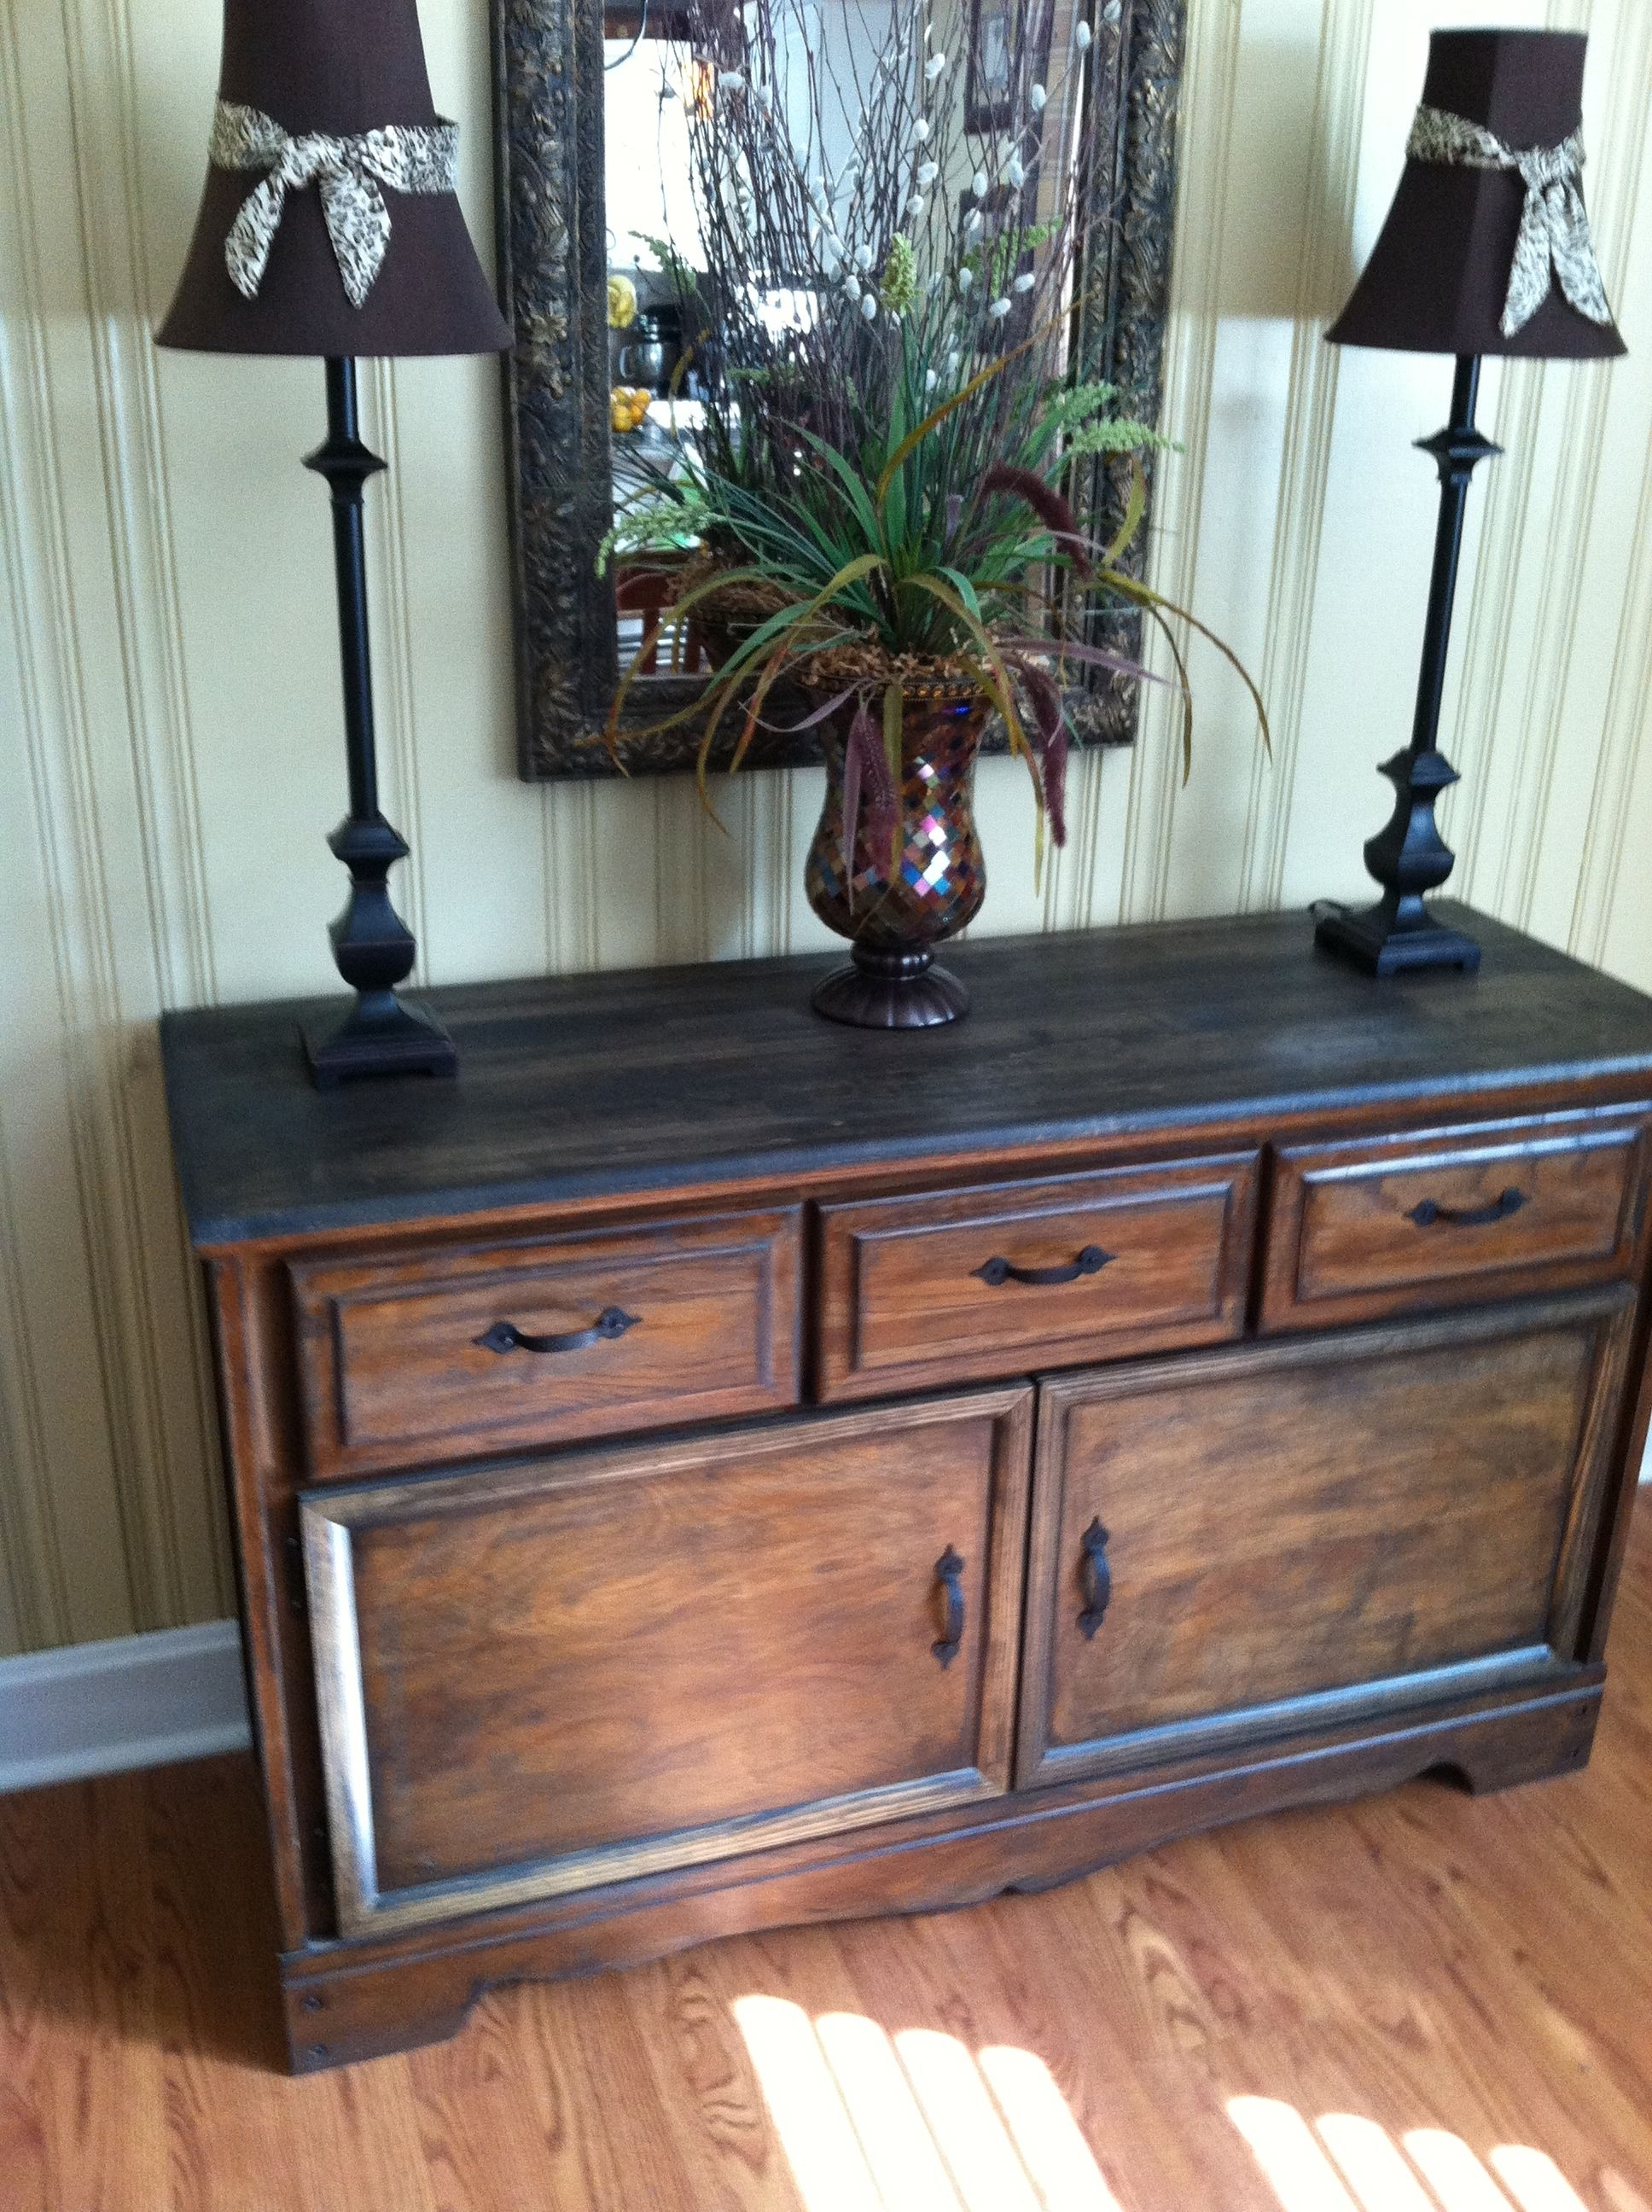 Old Refurbished Dresser Turned Buffet Table $35 Goodwill Find Pertaining To Most Up To Date Cass 2 Door Sideboards (View 19 of 20)